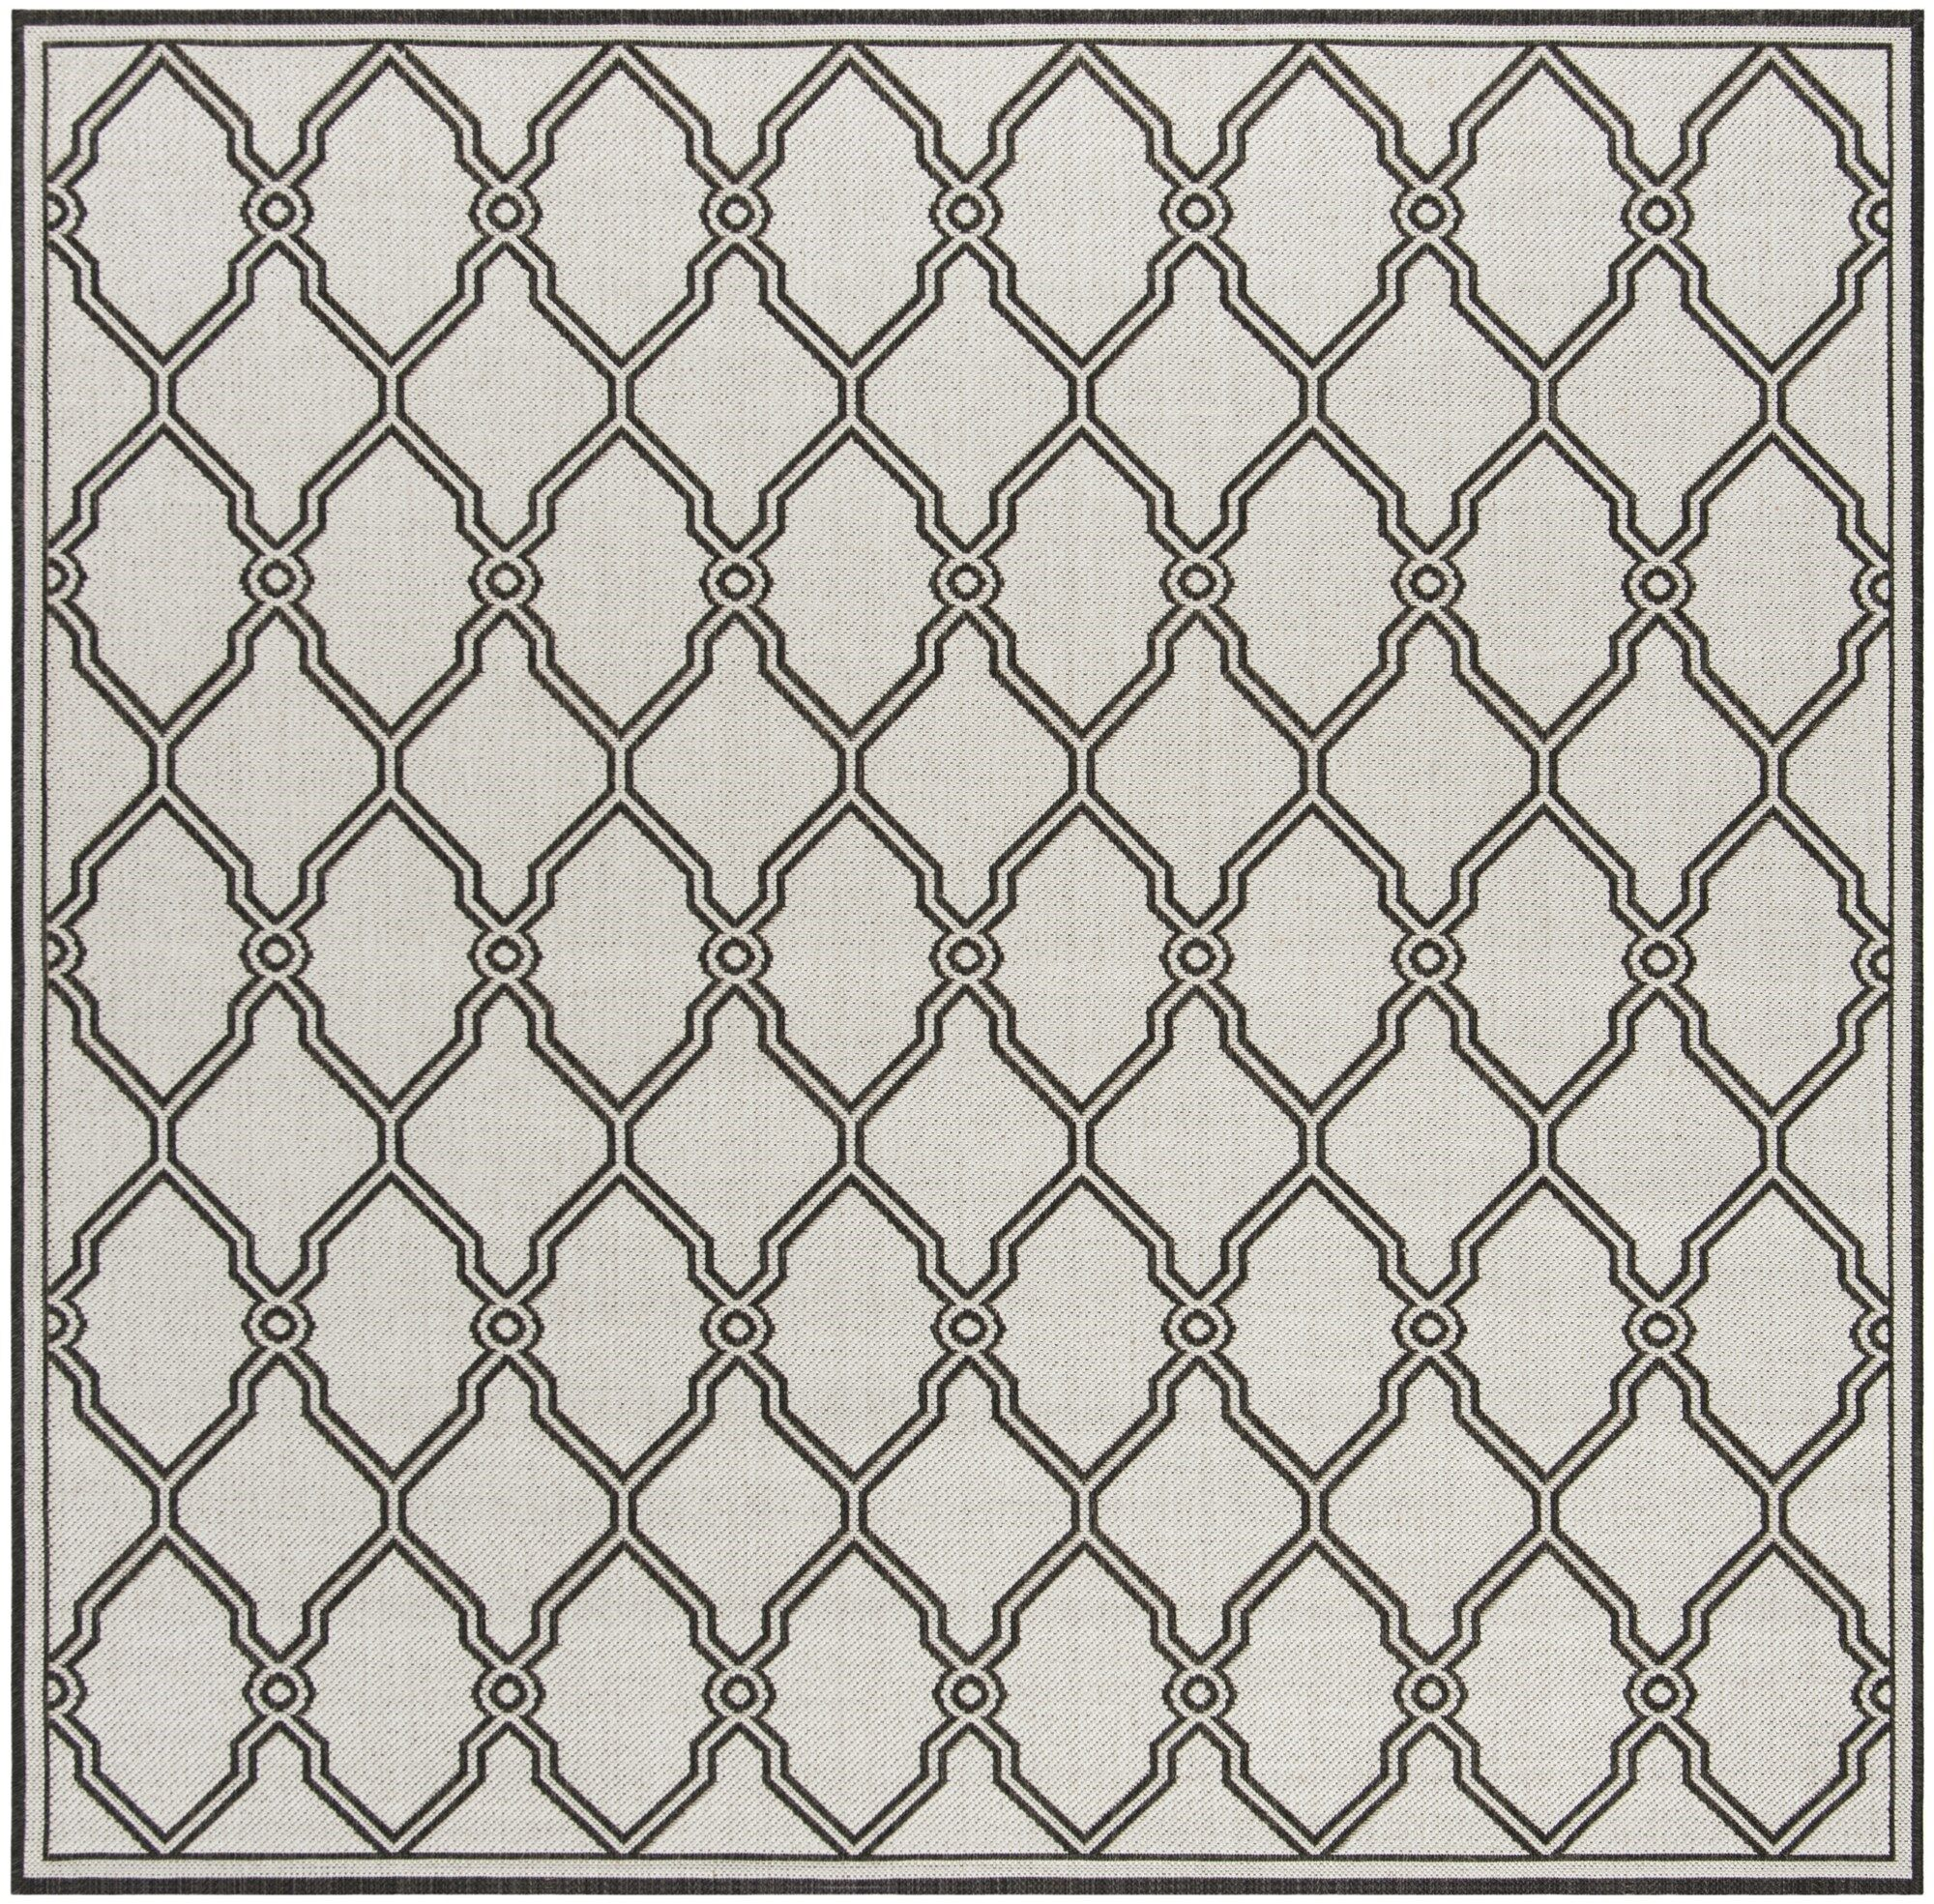 Miesha Contemporary Light Gray Area Rug Rug Size: Square 6'7